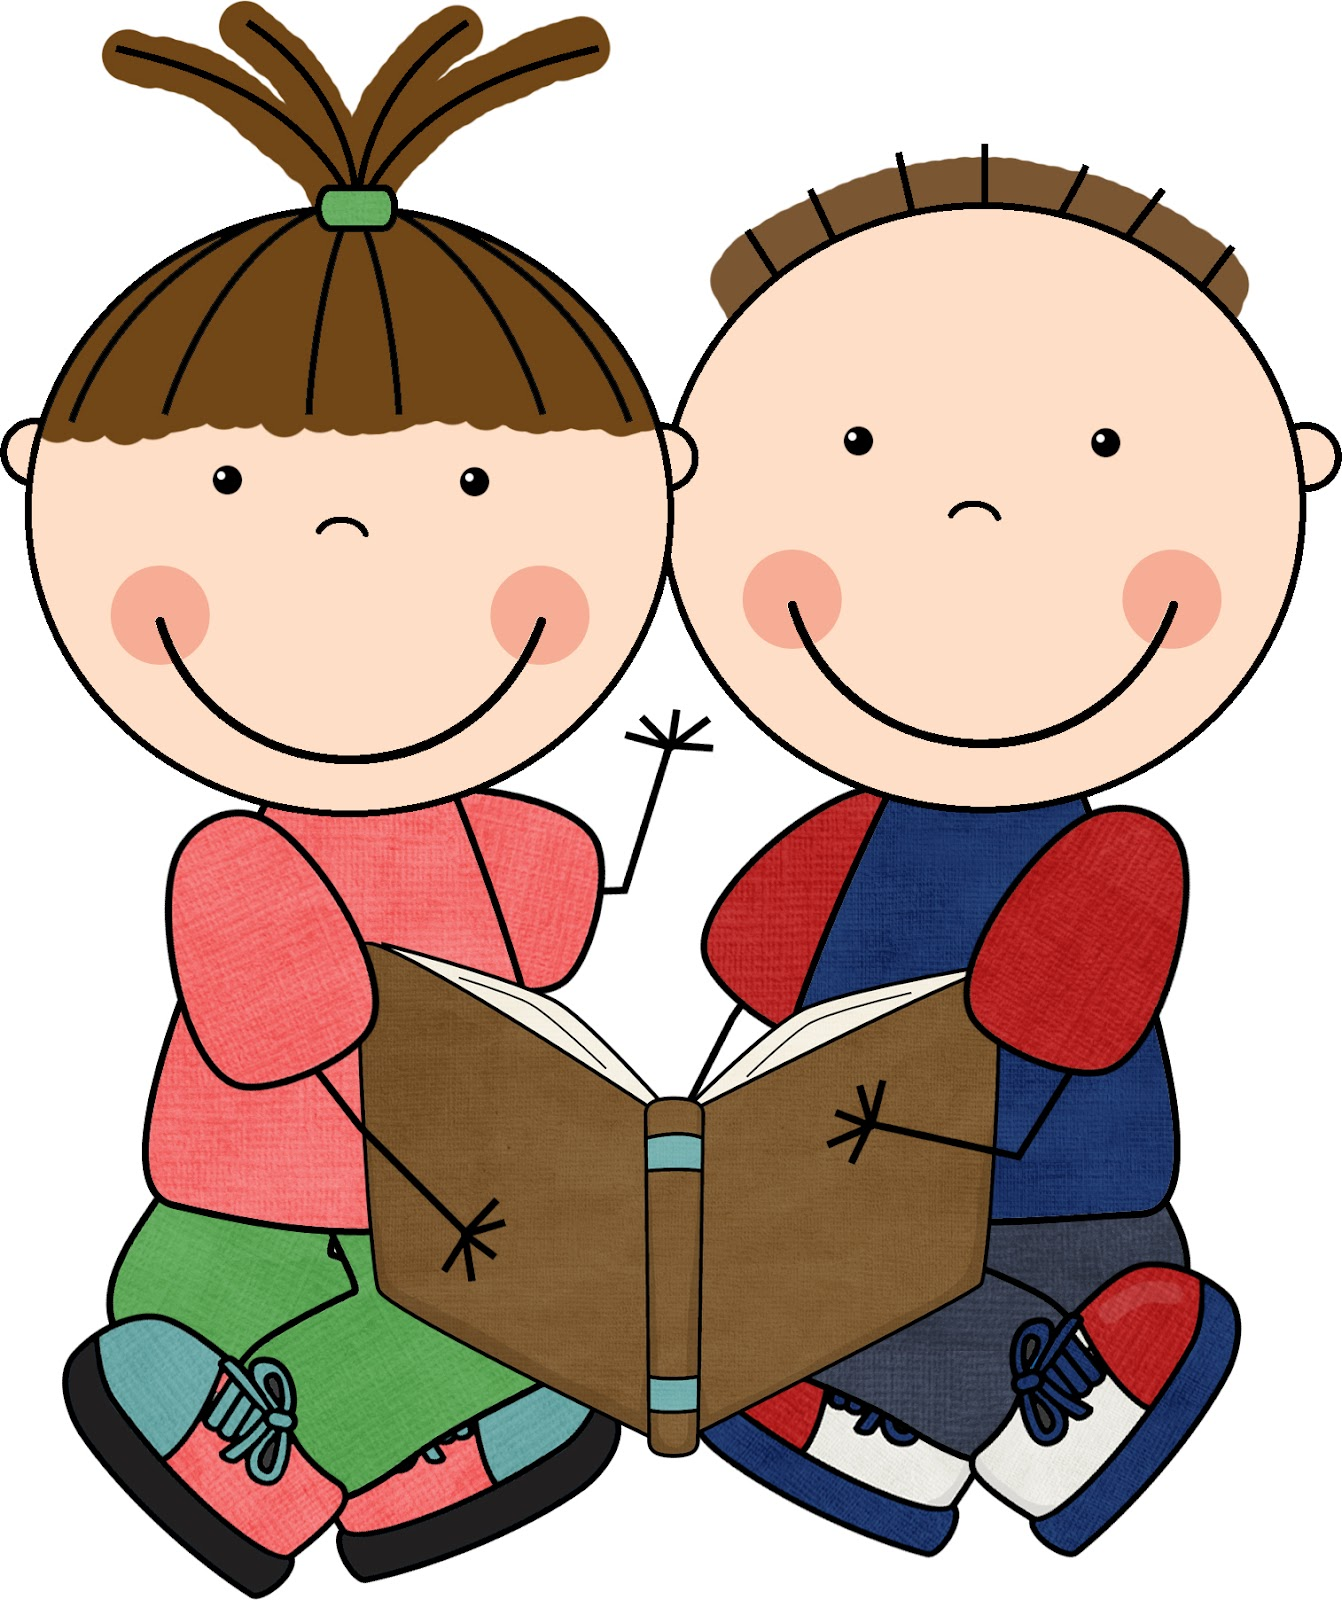 free-clip-art-children-reading-books.jpg